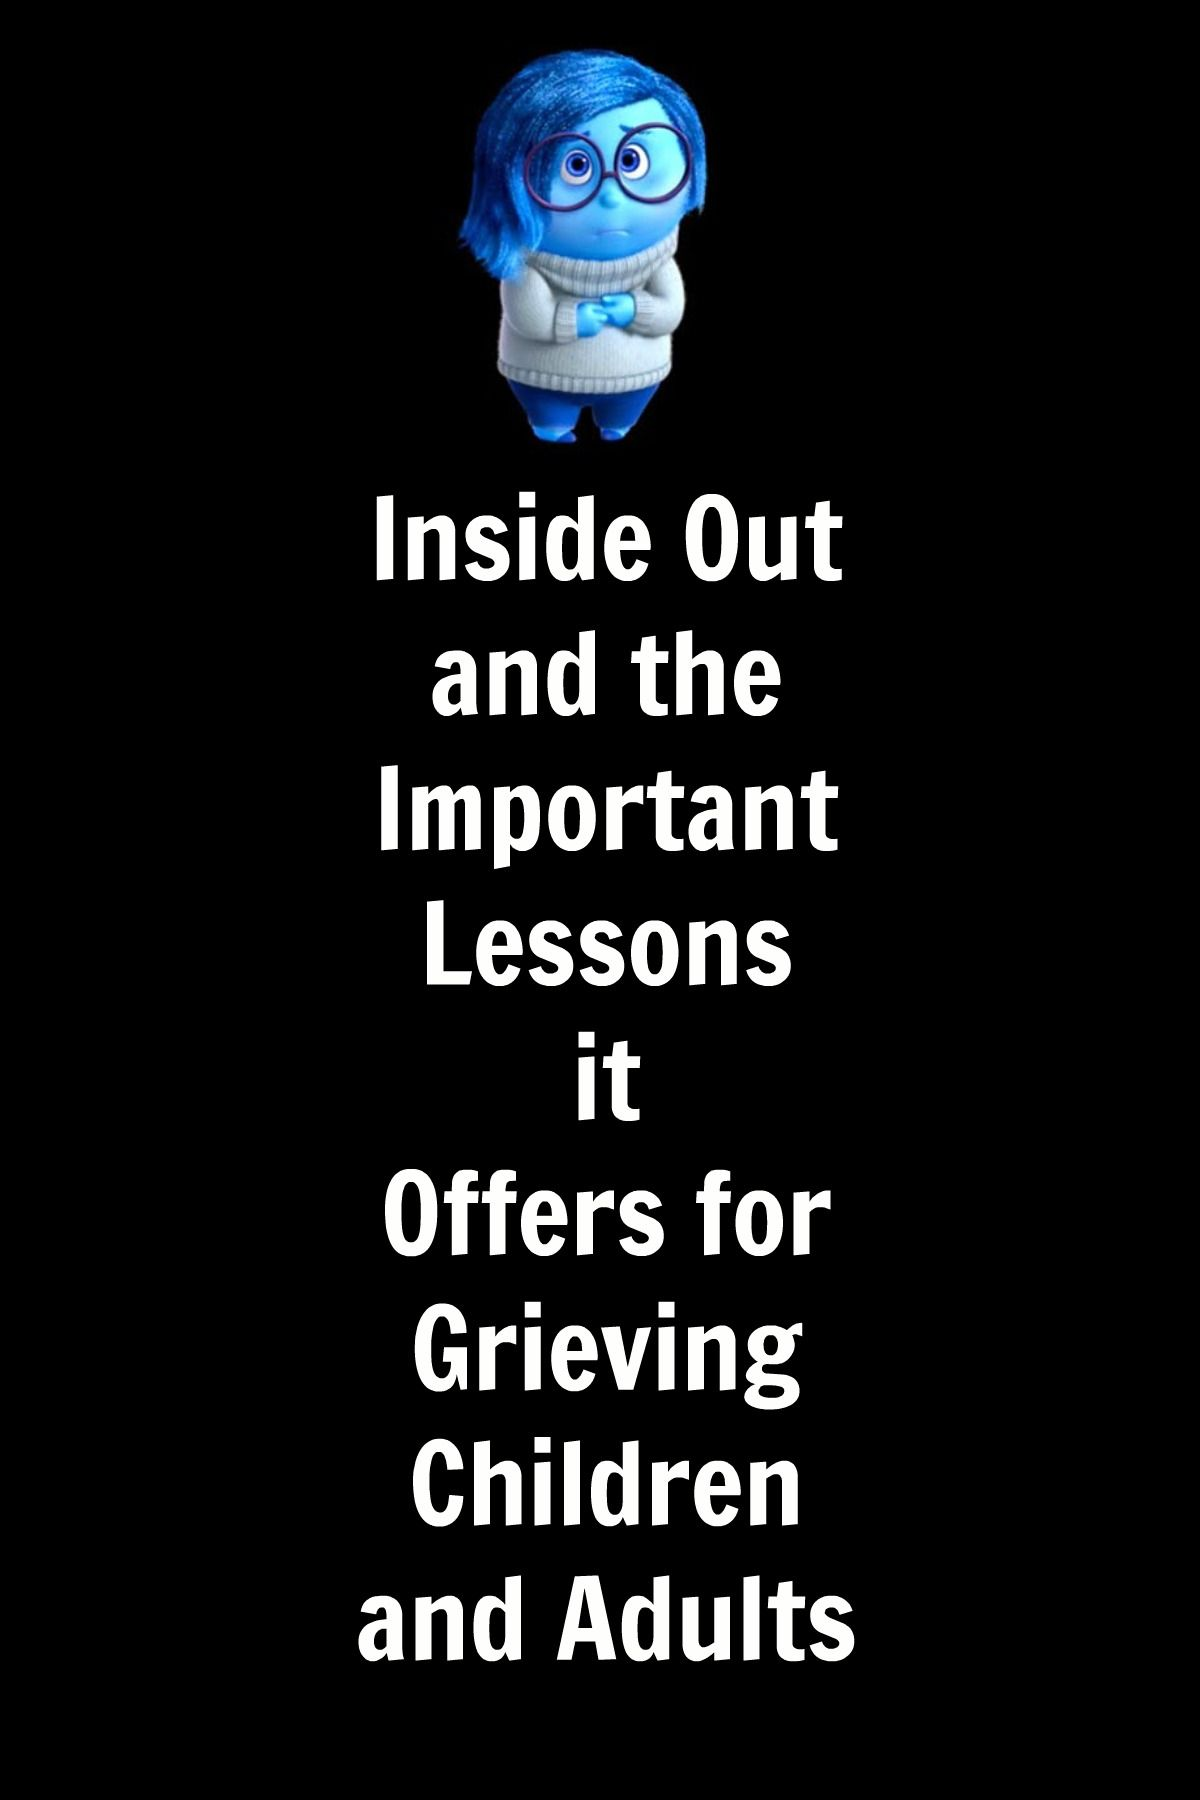 Inside Out Offers Important Lessons For Grieving Children